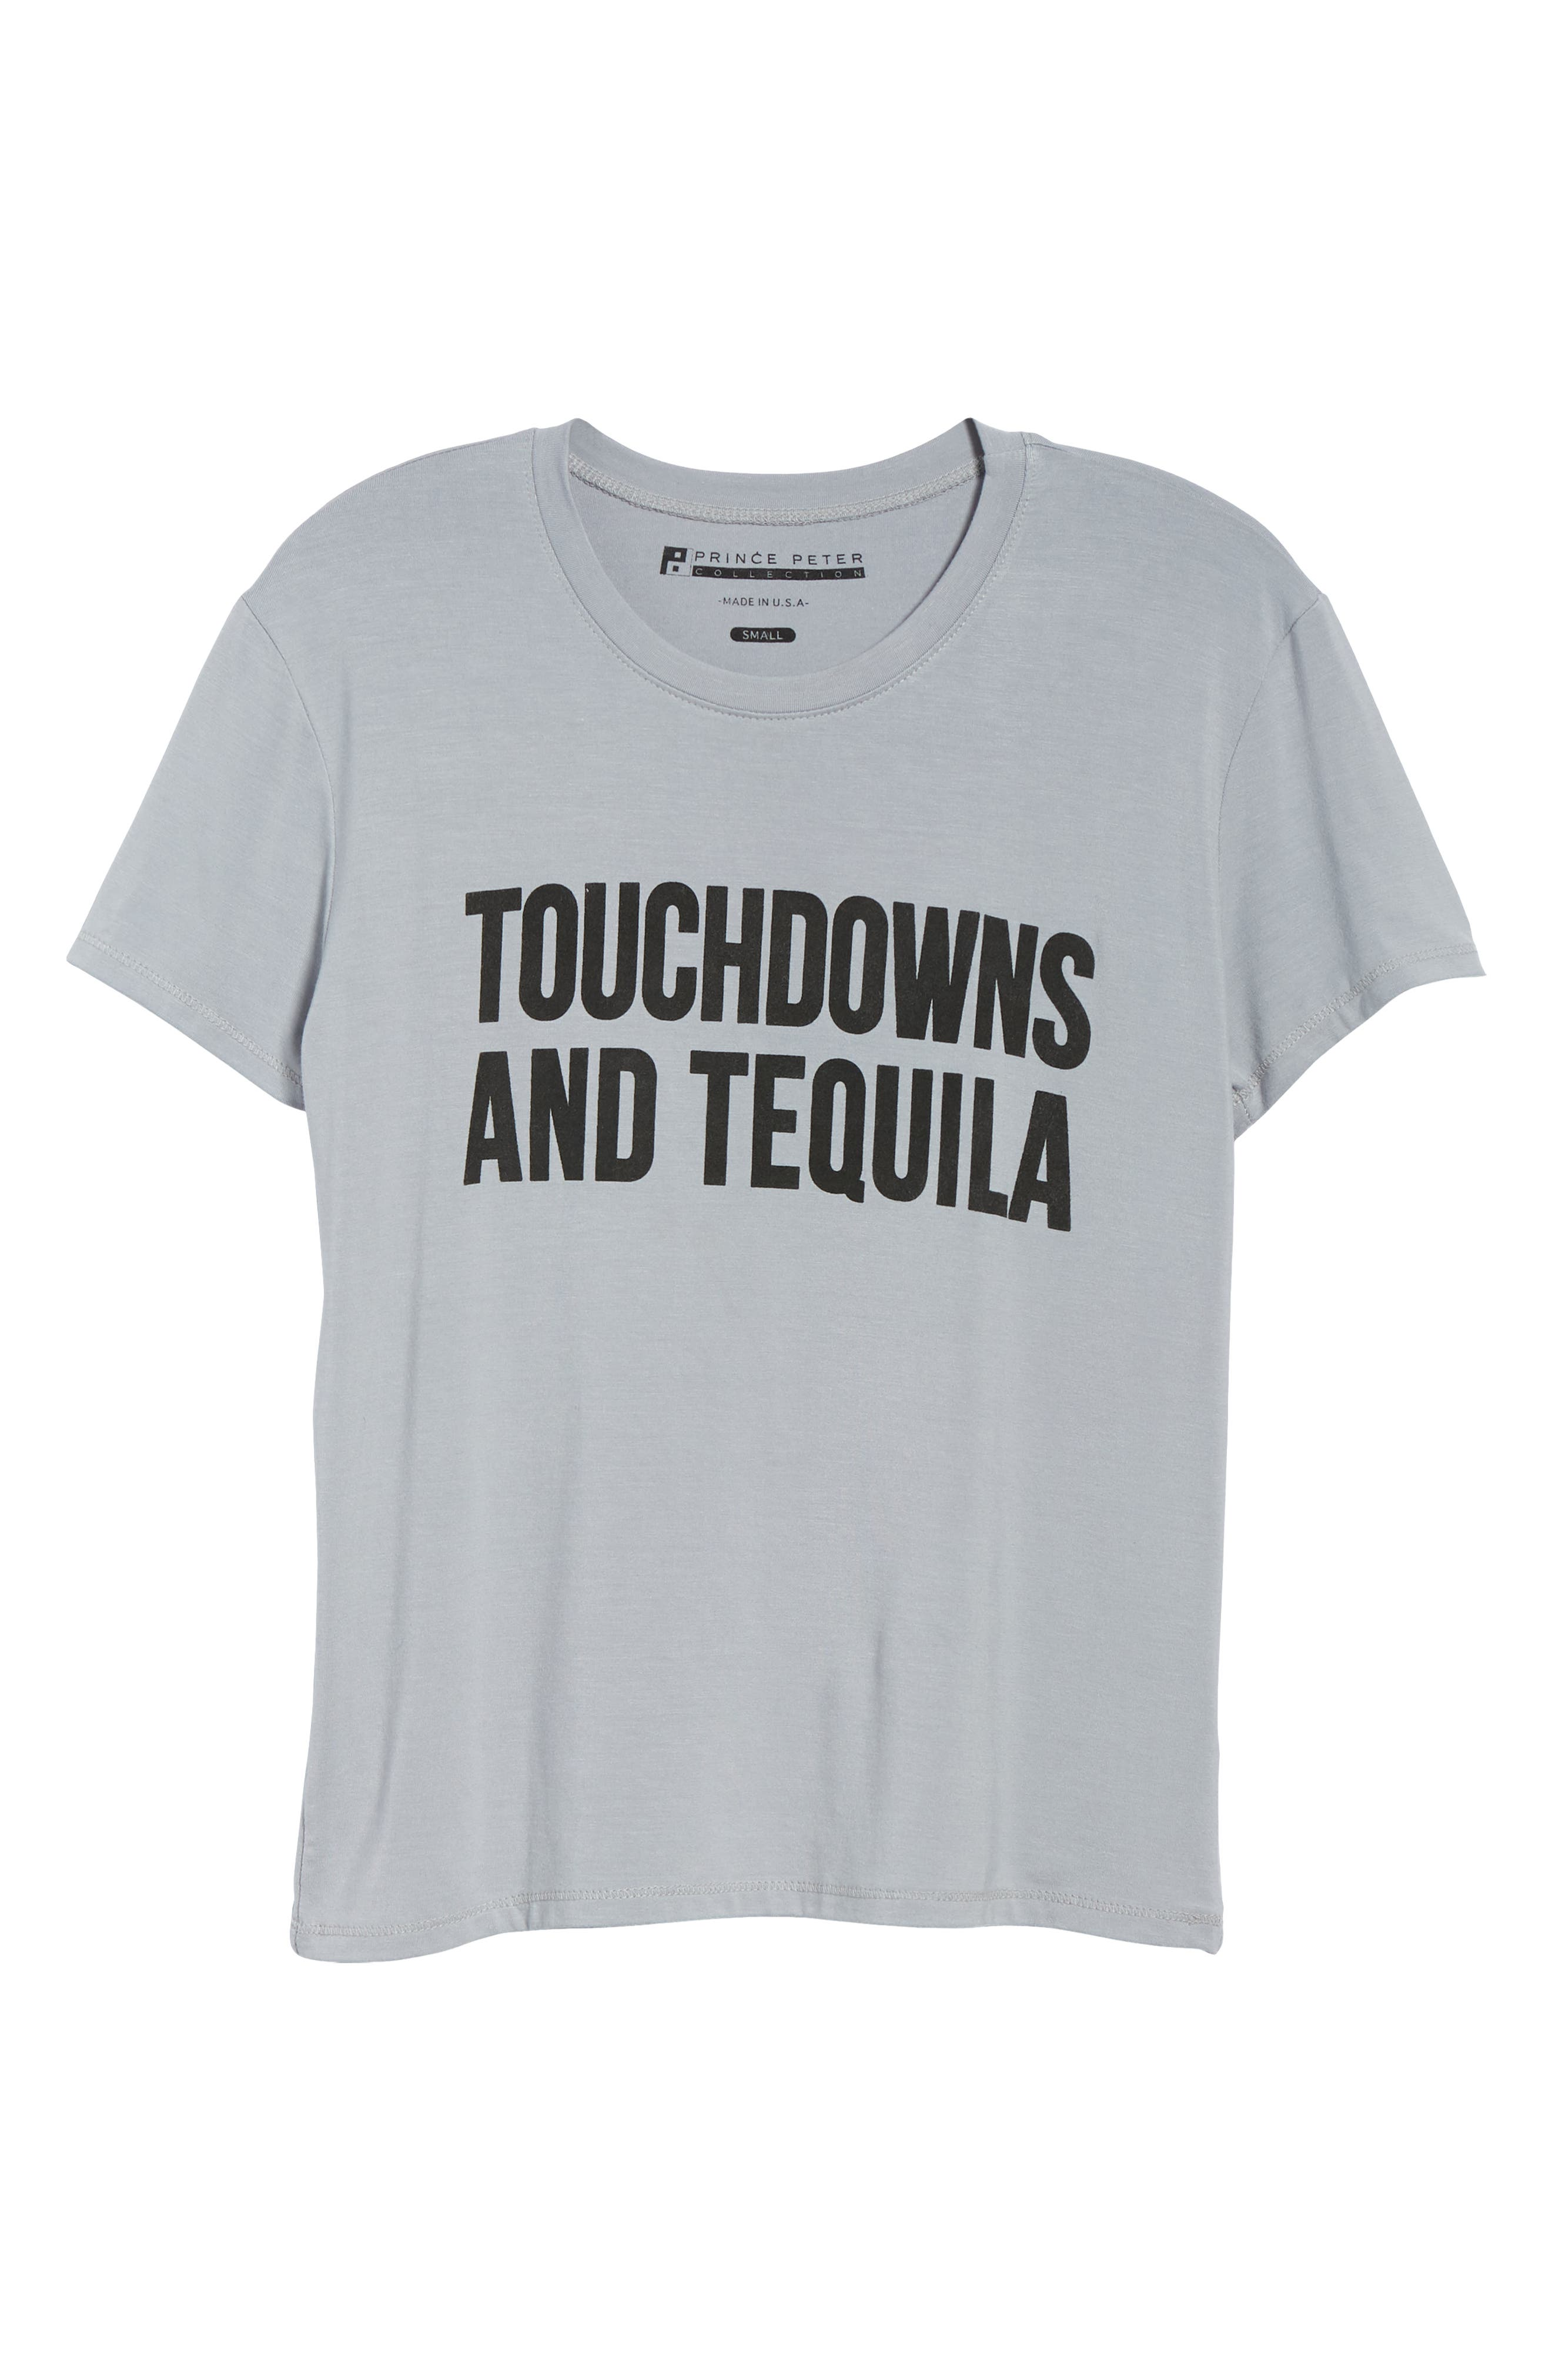 Touchdowns & Tequila Tee,                             Alternate thumbnail 6, color,                             GREY